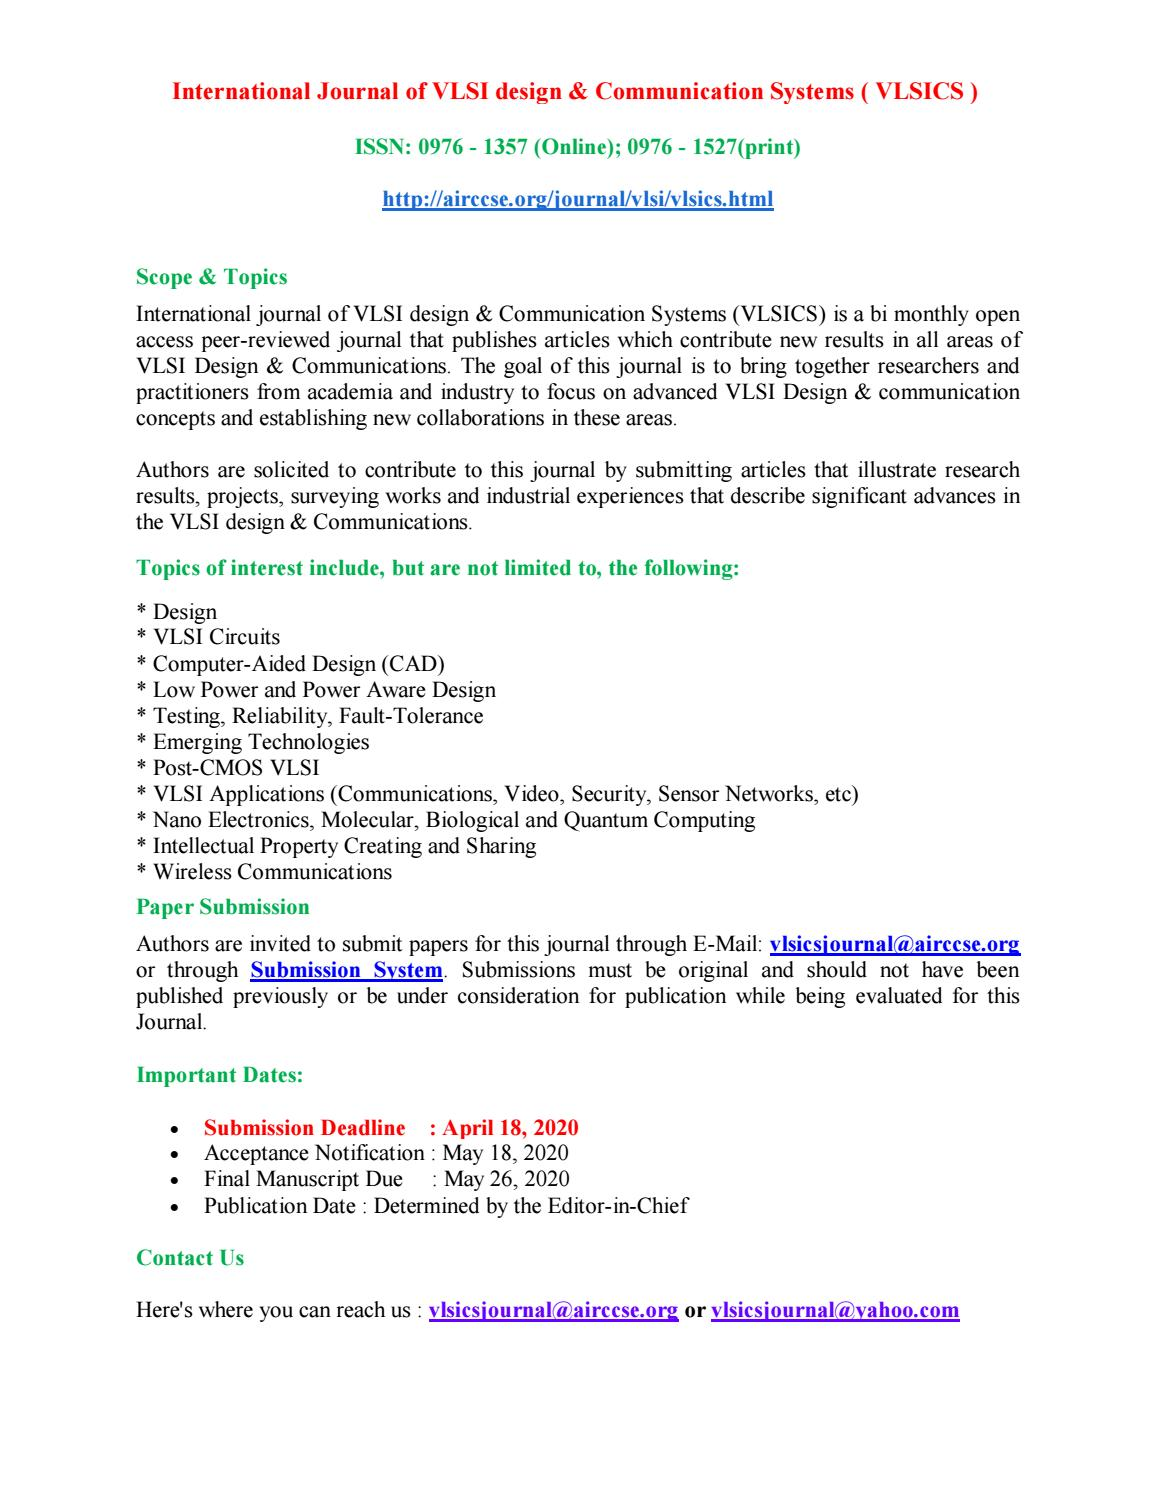 research papers on vlsi